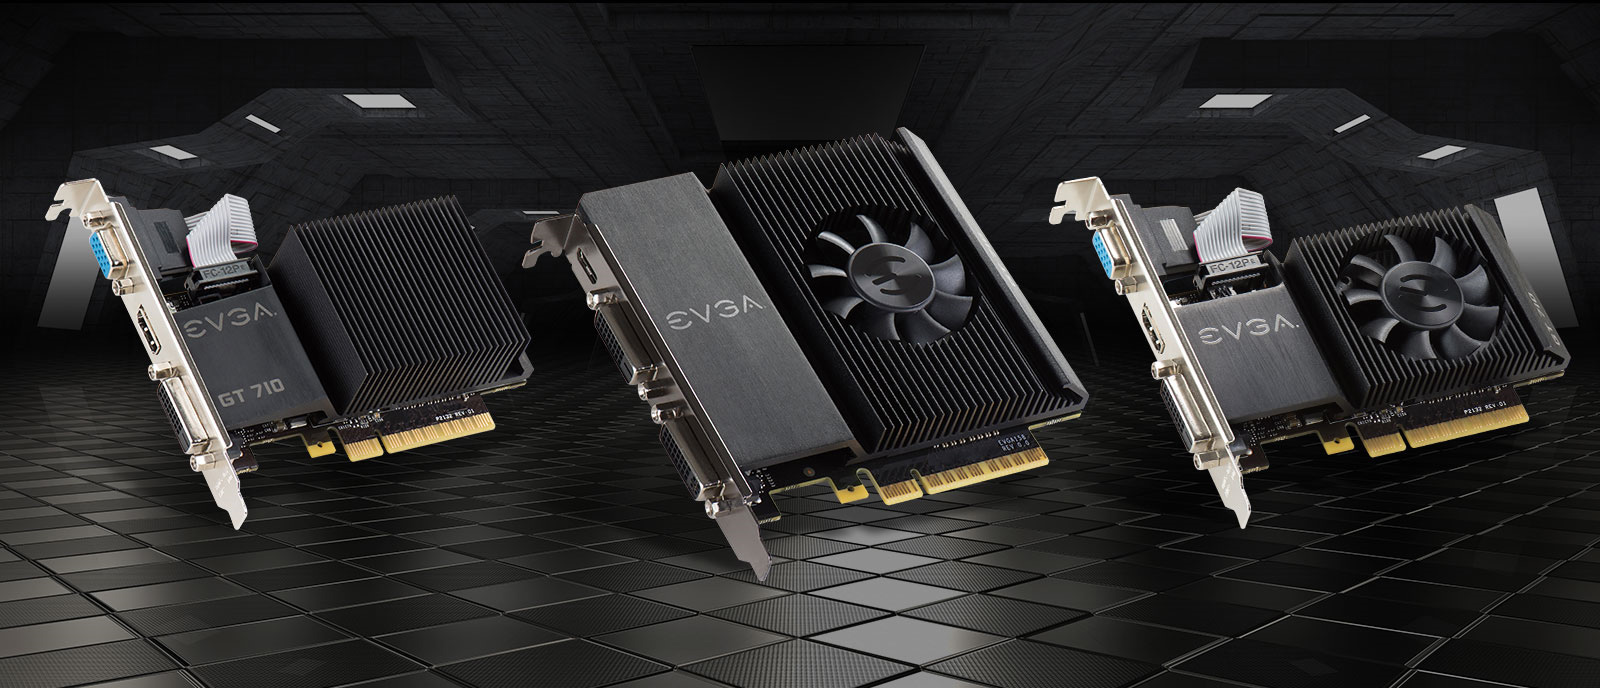 Gtx 930 Images - Reverse Search